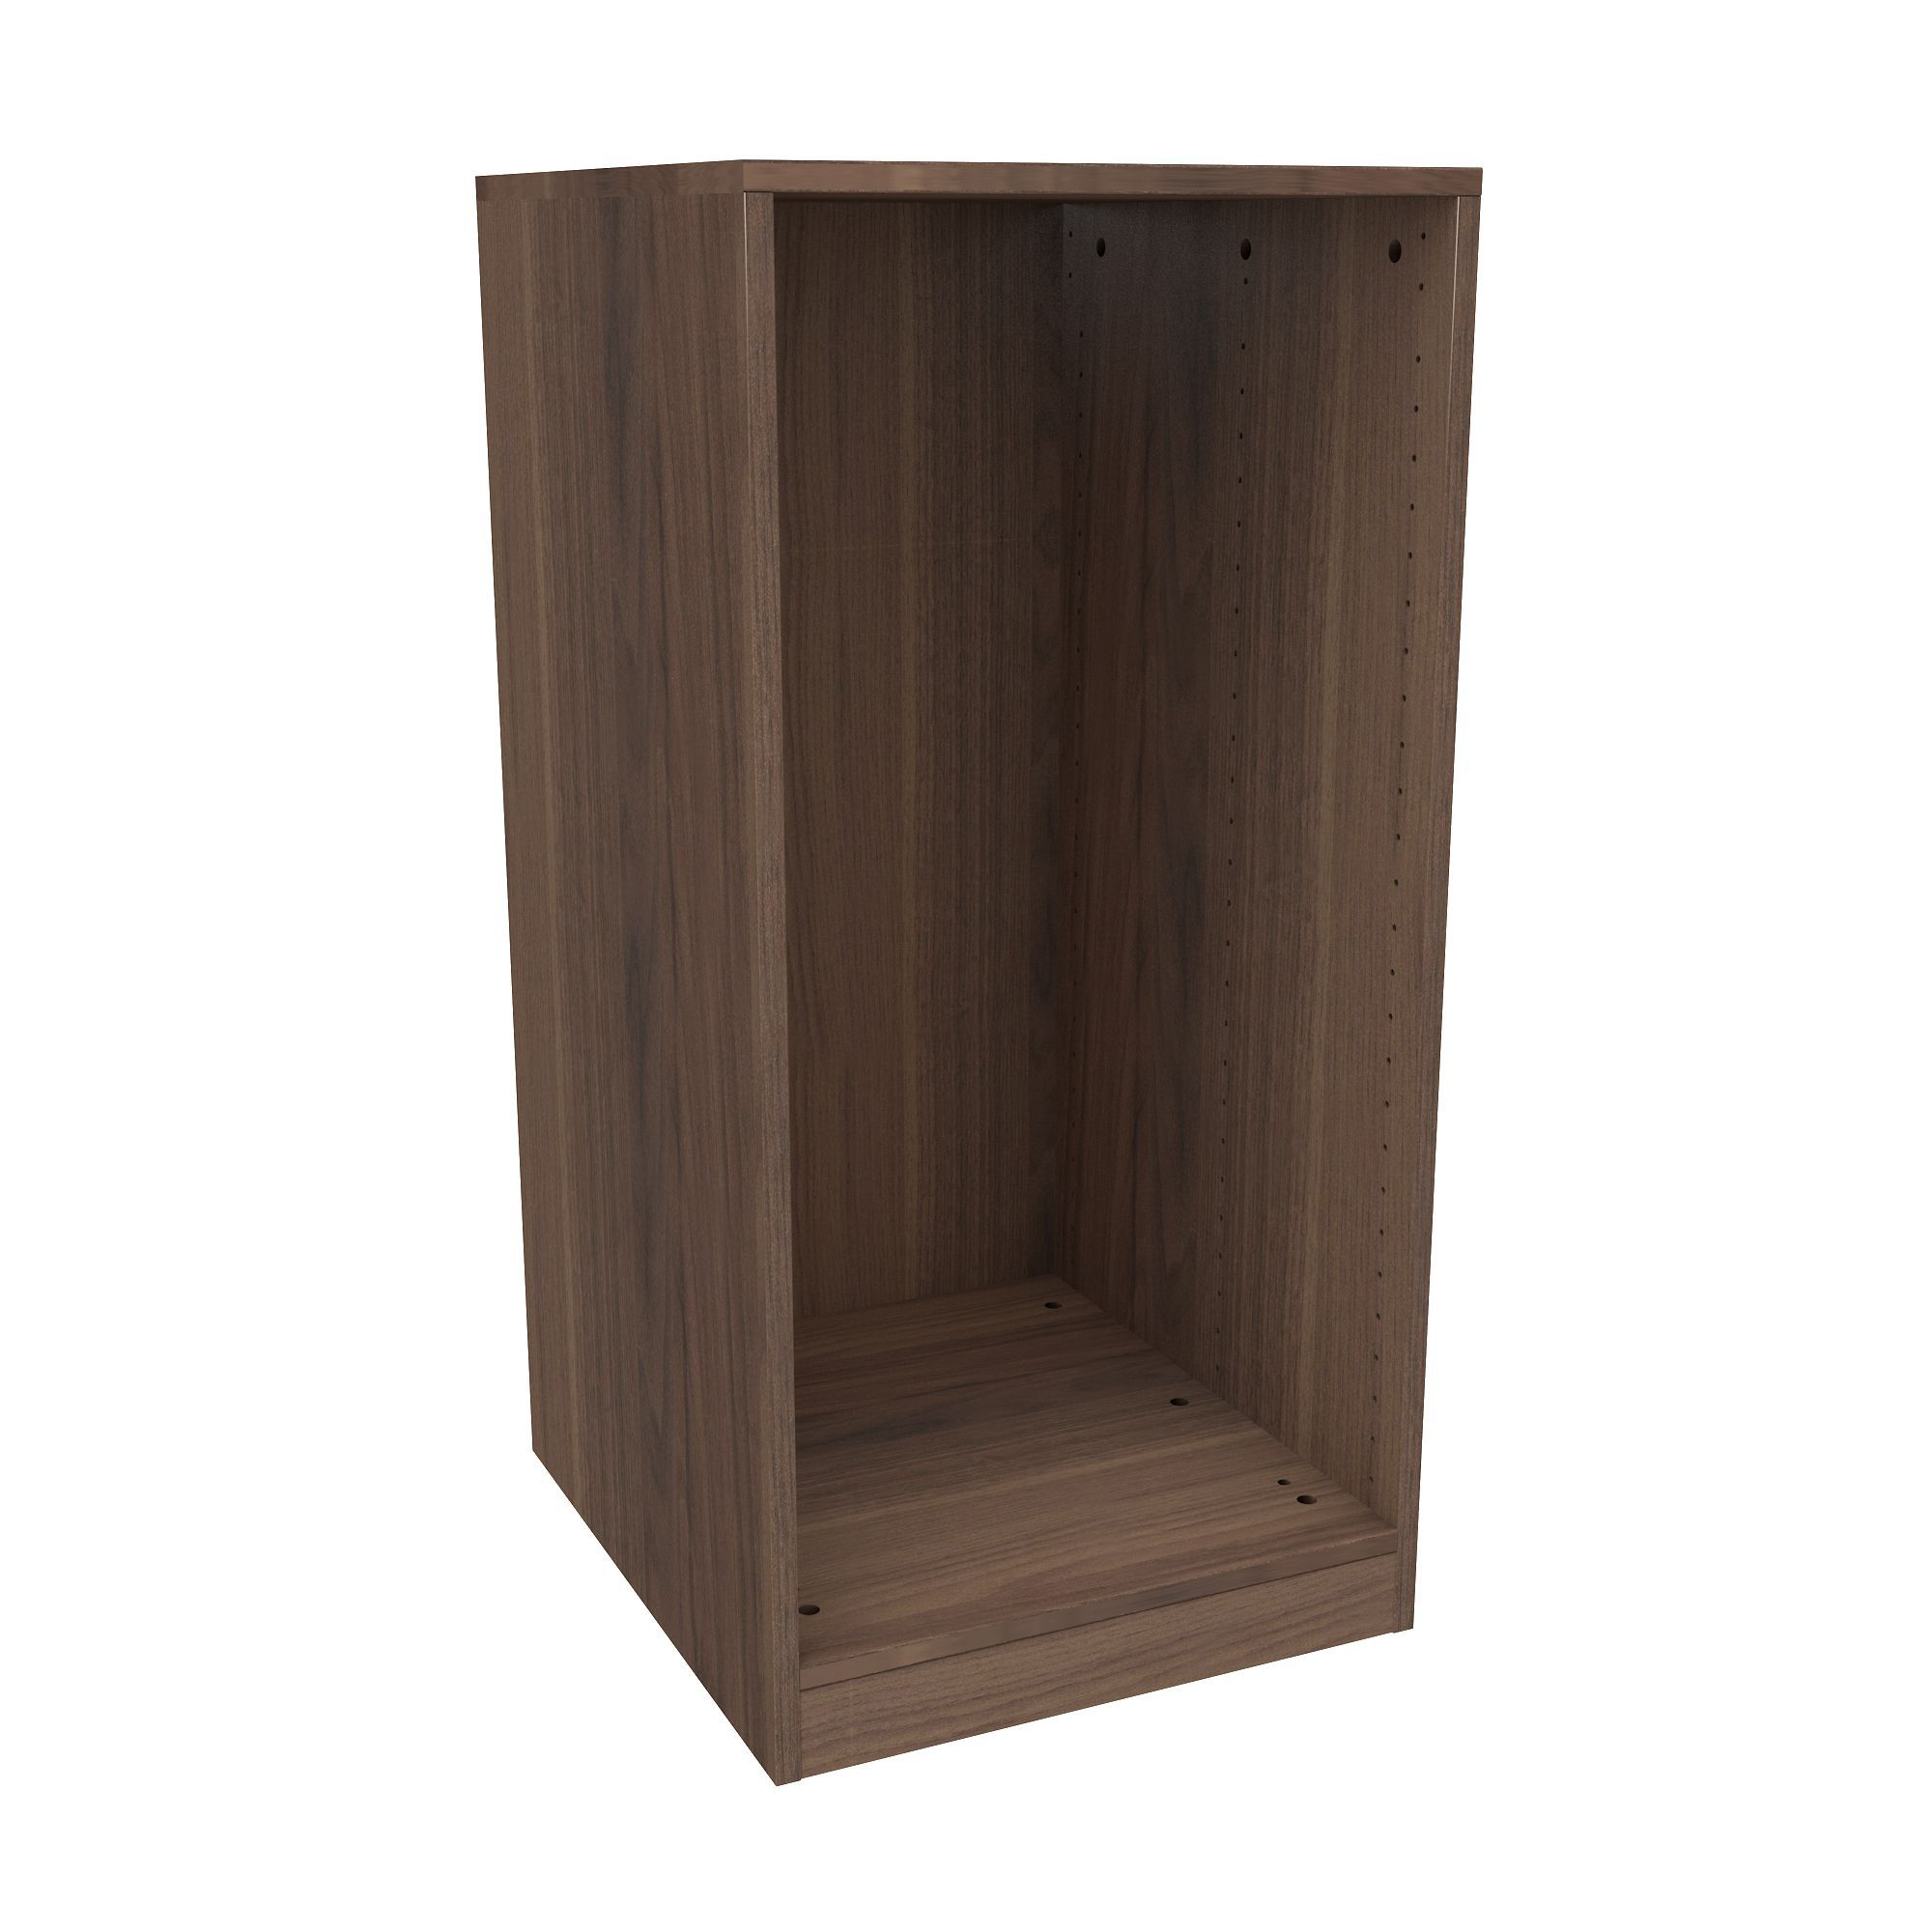 Darwin Modular Walnut Effect Chest Cabinet (h)1026mm (w)500mm (d)566mm